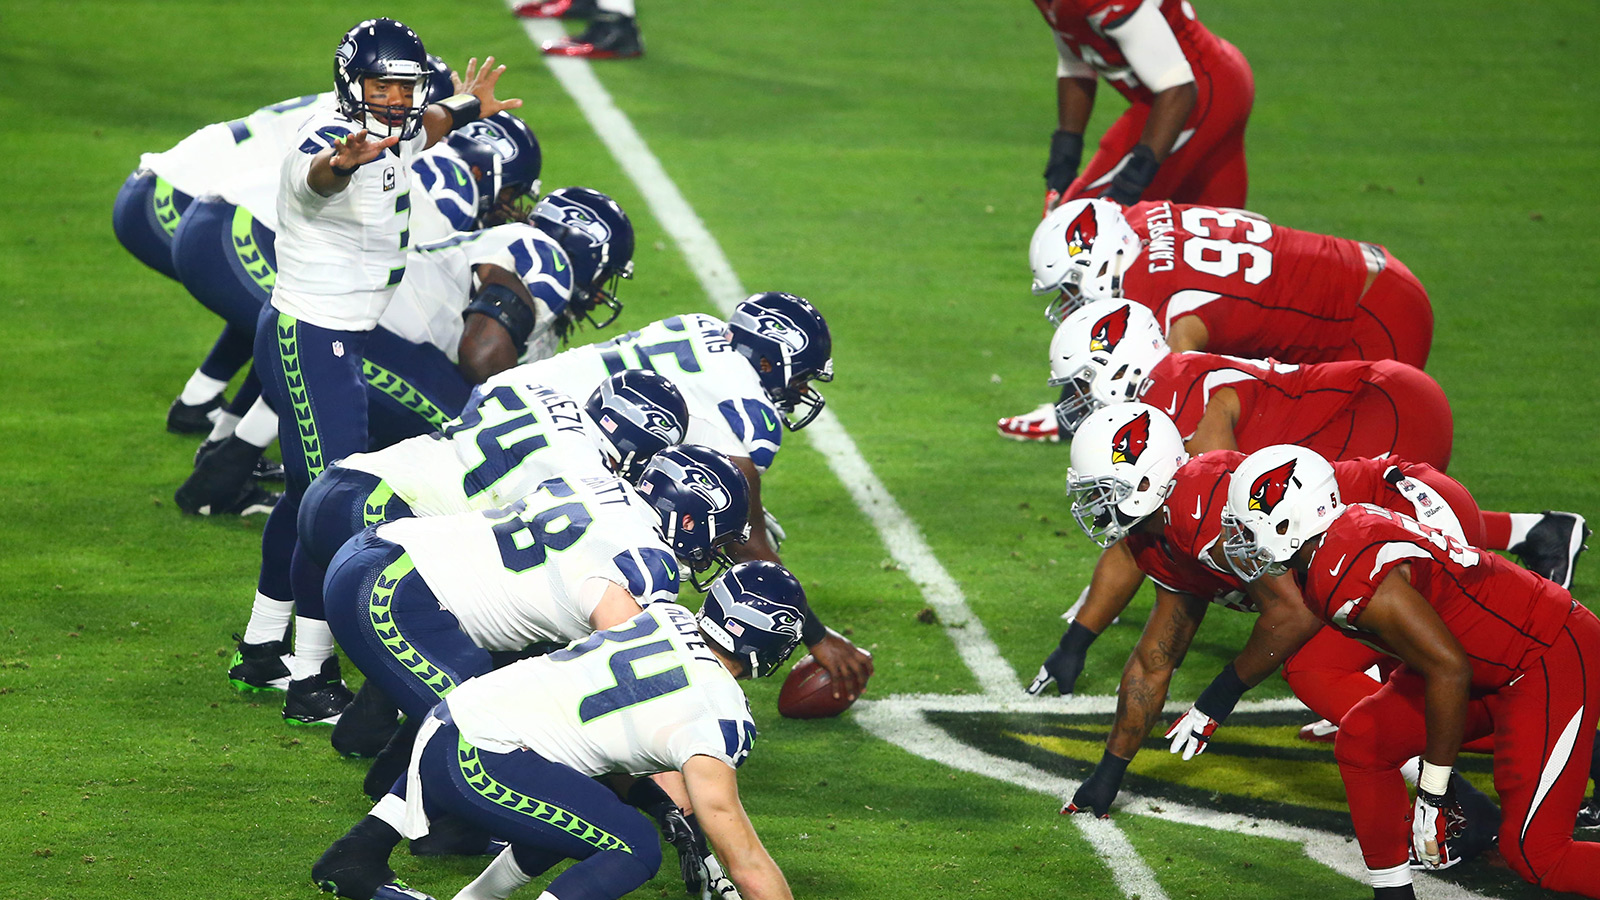 Cardinals, Seahawks again clear favorites in NFC West